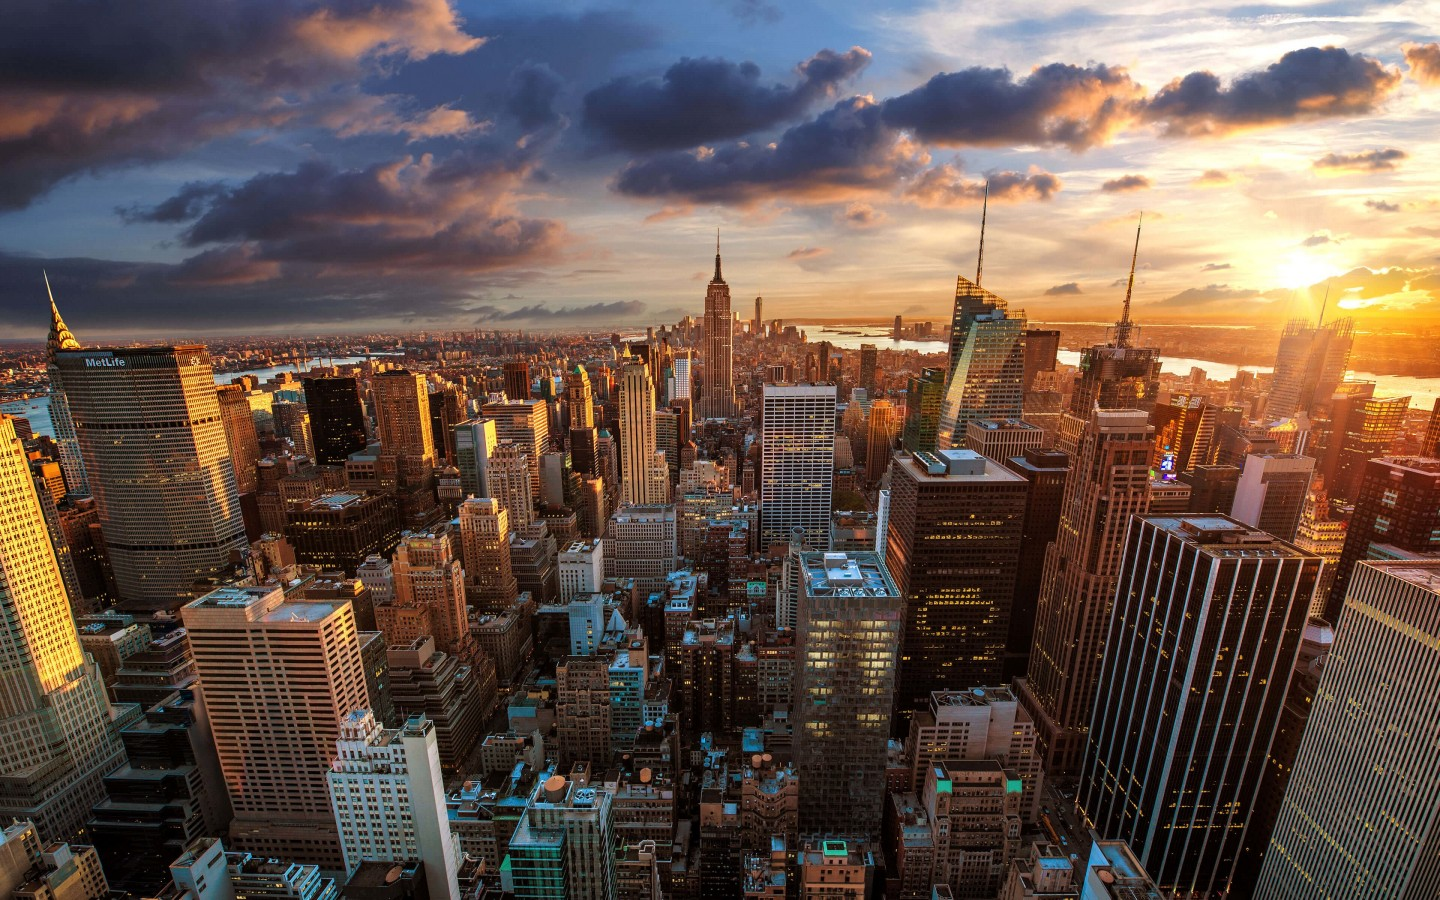 New York City Skyline At Sunset Wallpaper for Desktop 1440x900